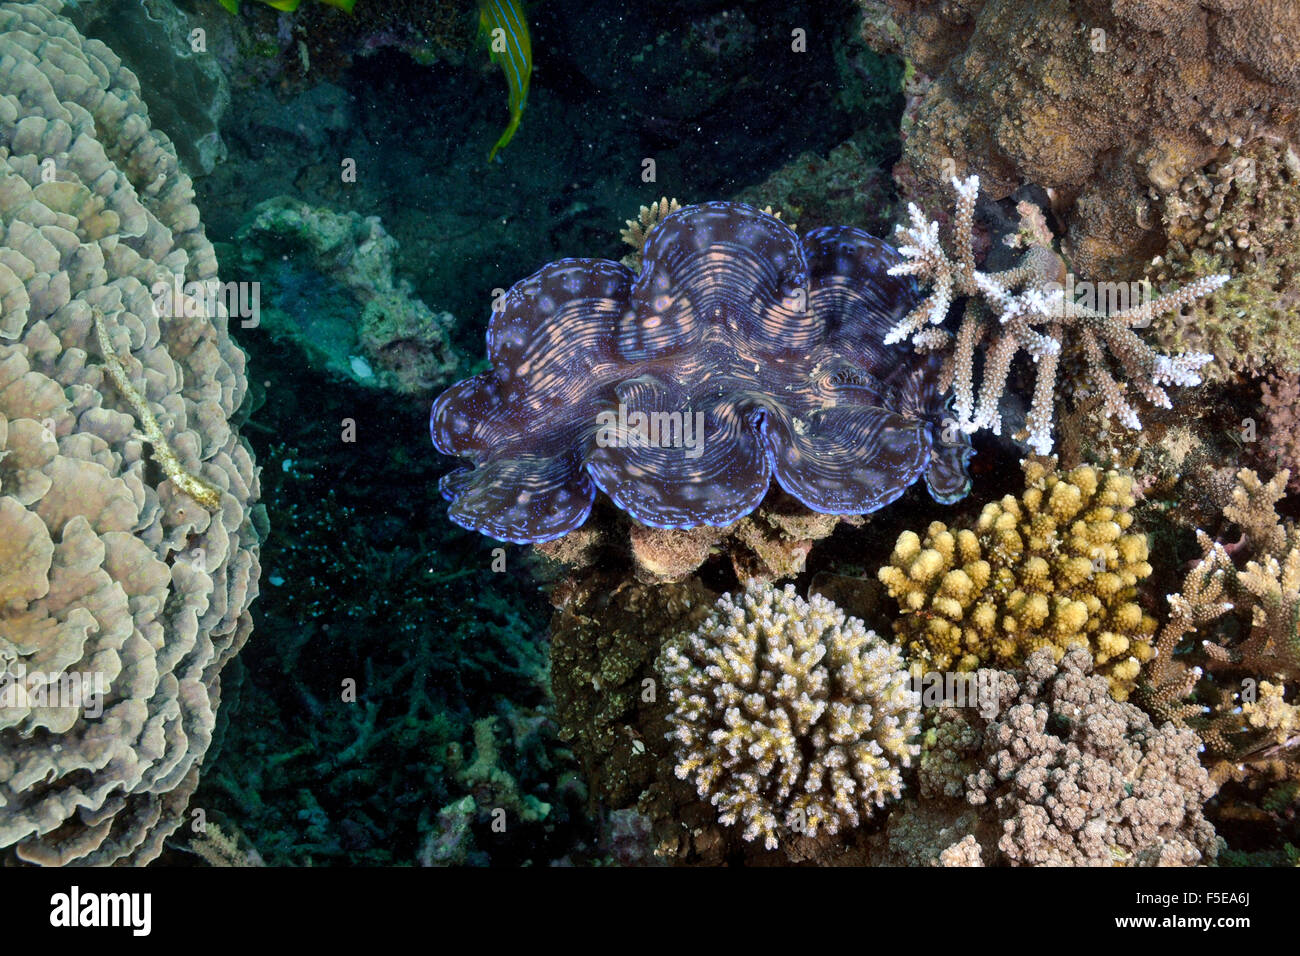 Giant clam, Tridacna maxima, in a coral reef at Seche Croissant, Noumea, New Caledonia - Stock Image